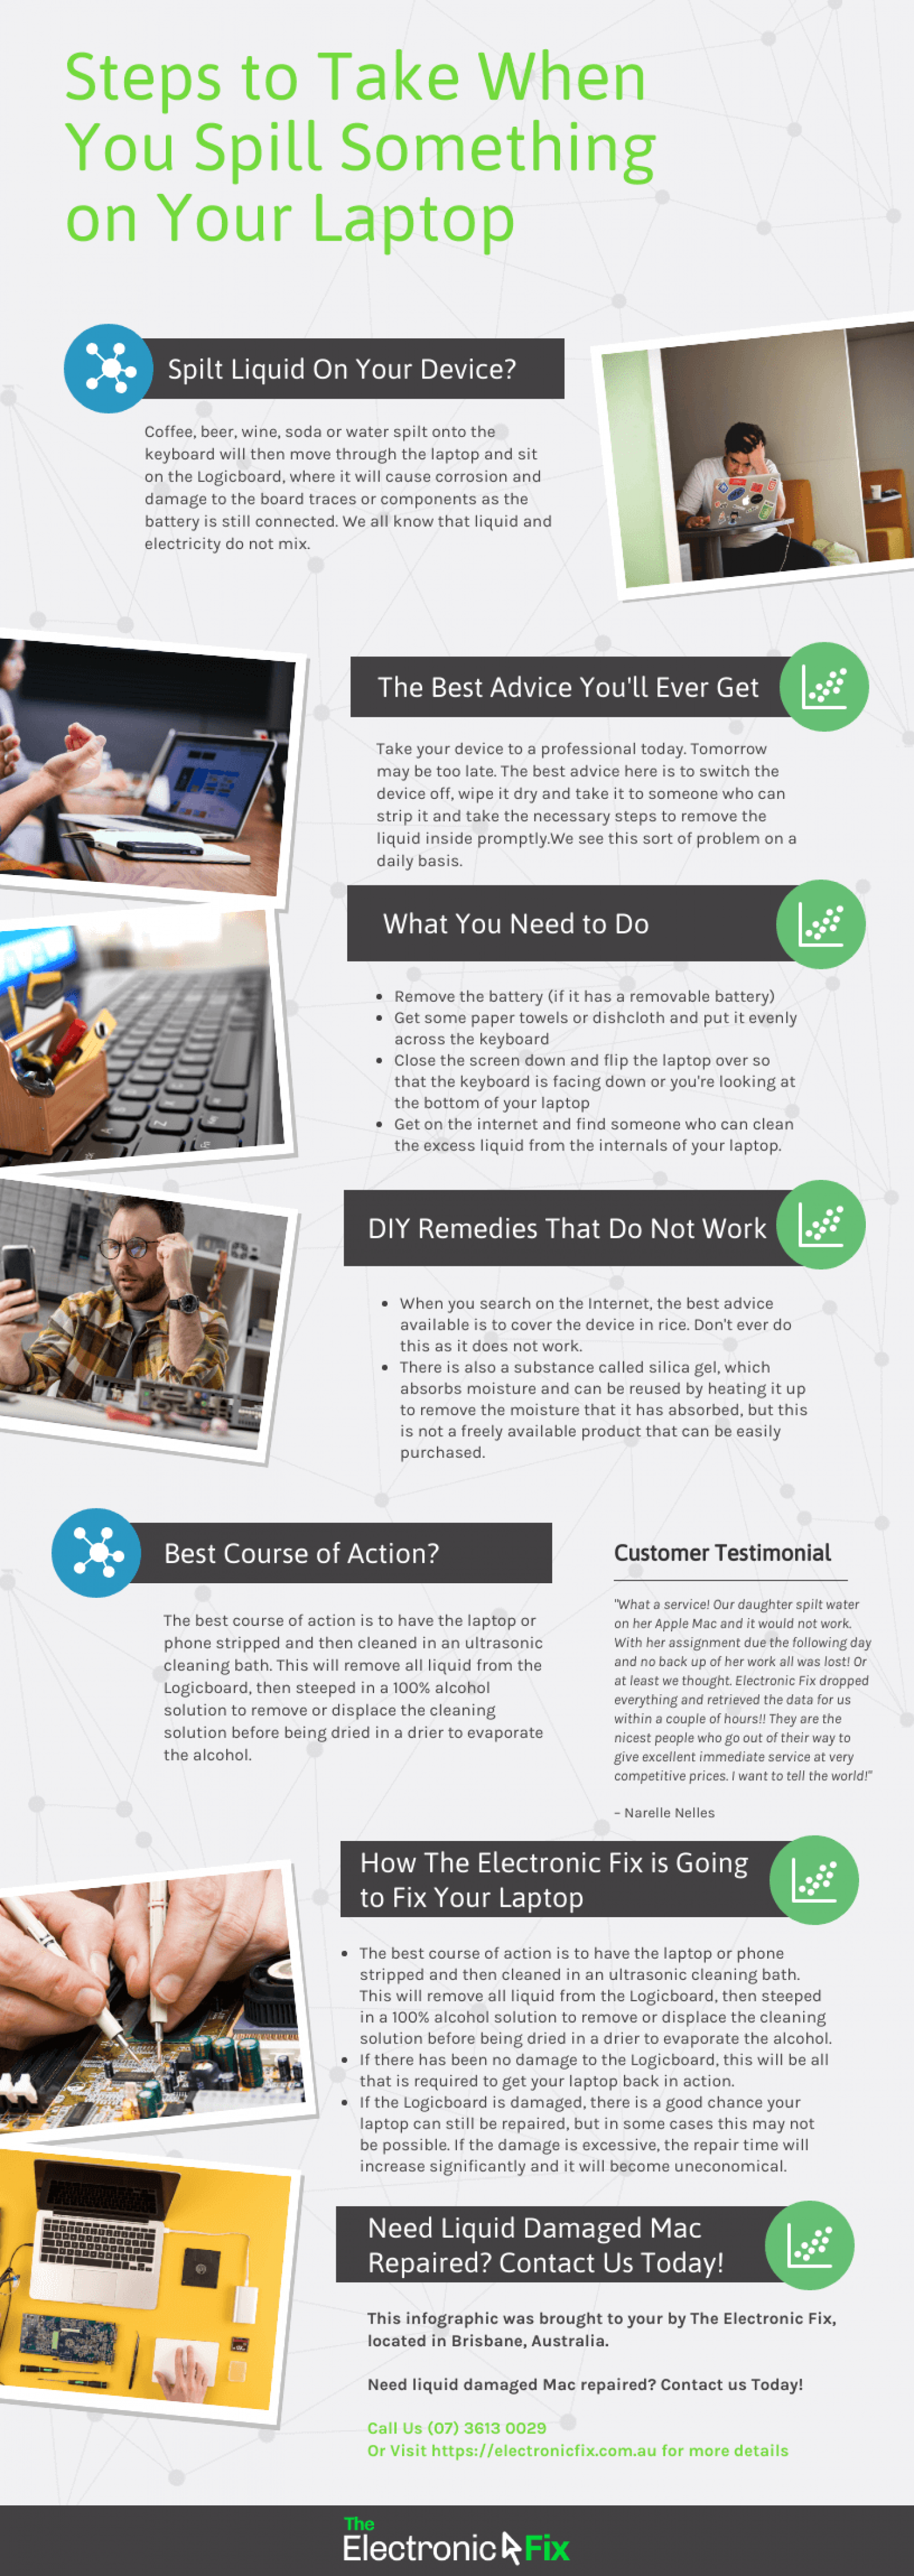 Steps to Take When You Spill Something on Your Laptop [Infographic] Infographic